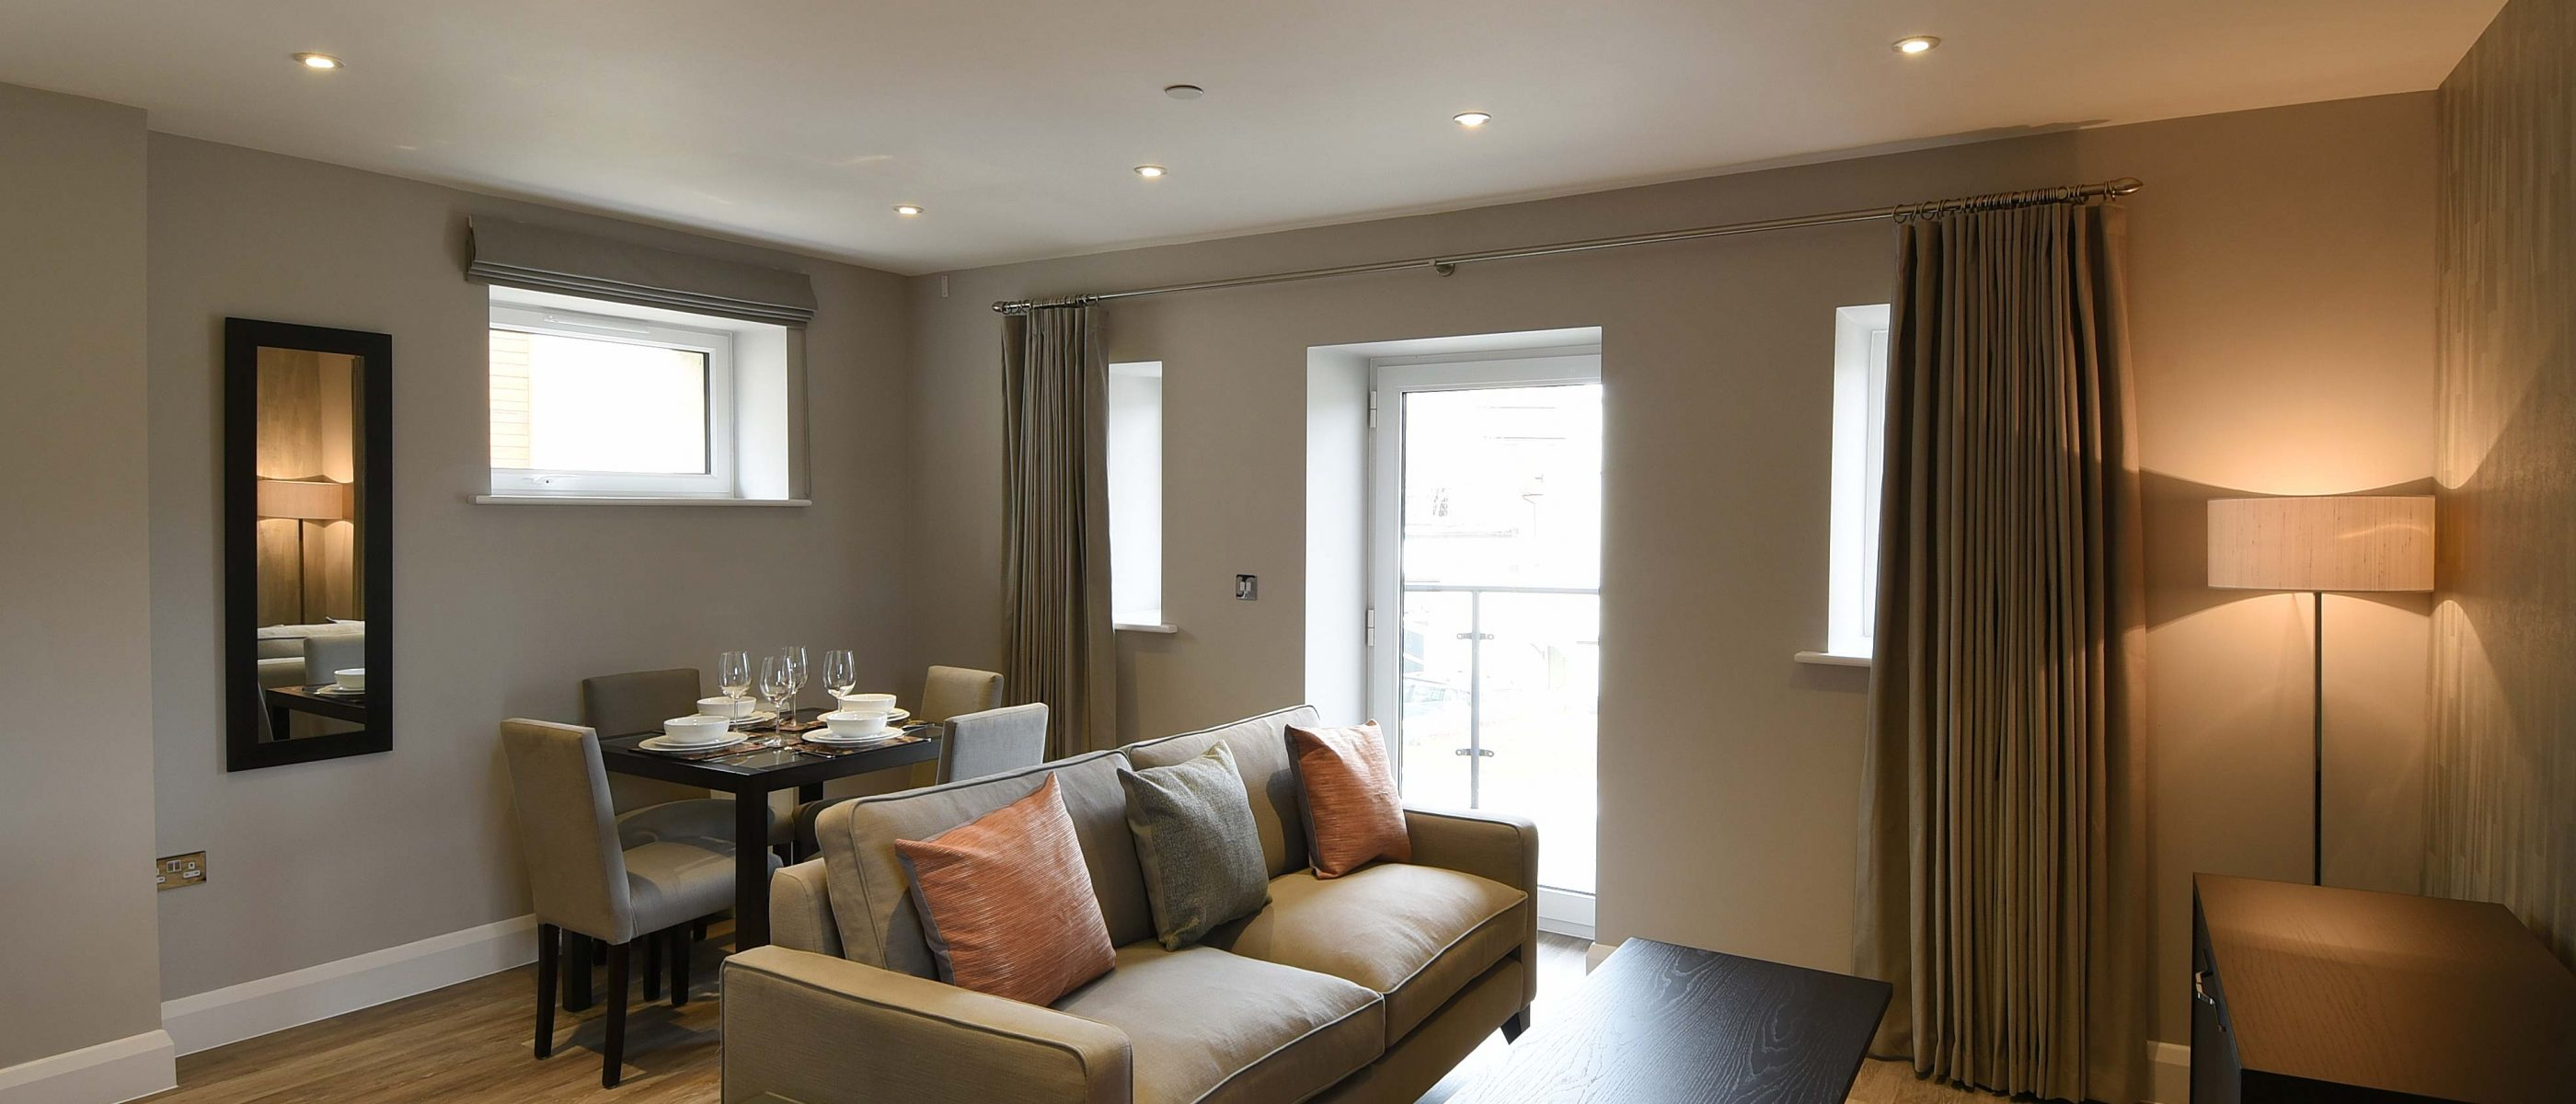 Living area of the Daniel Harris Suite: a one bedroom luxury serviced apartment at The Old Gaol, by the River Thames in Abingdon, near Oxford. Ideal accommodation for corporate or holiday short lets